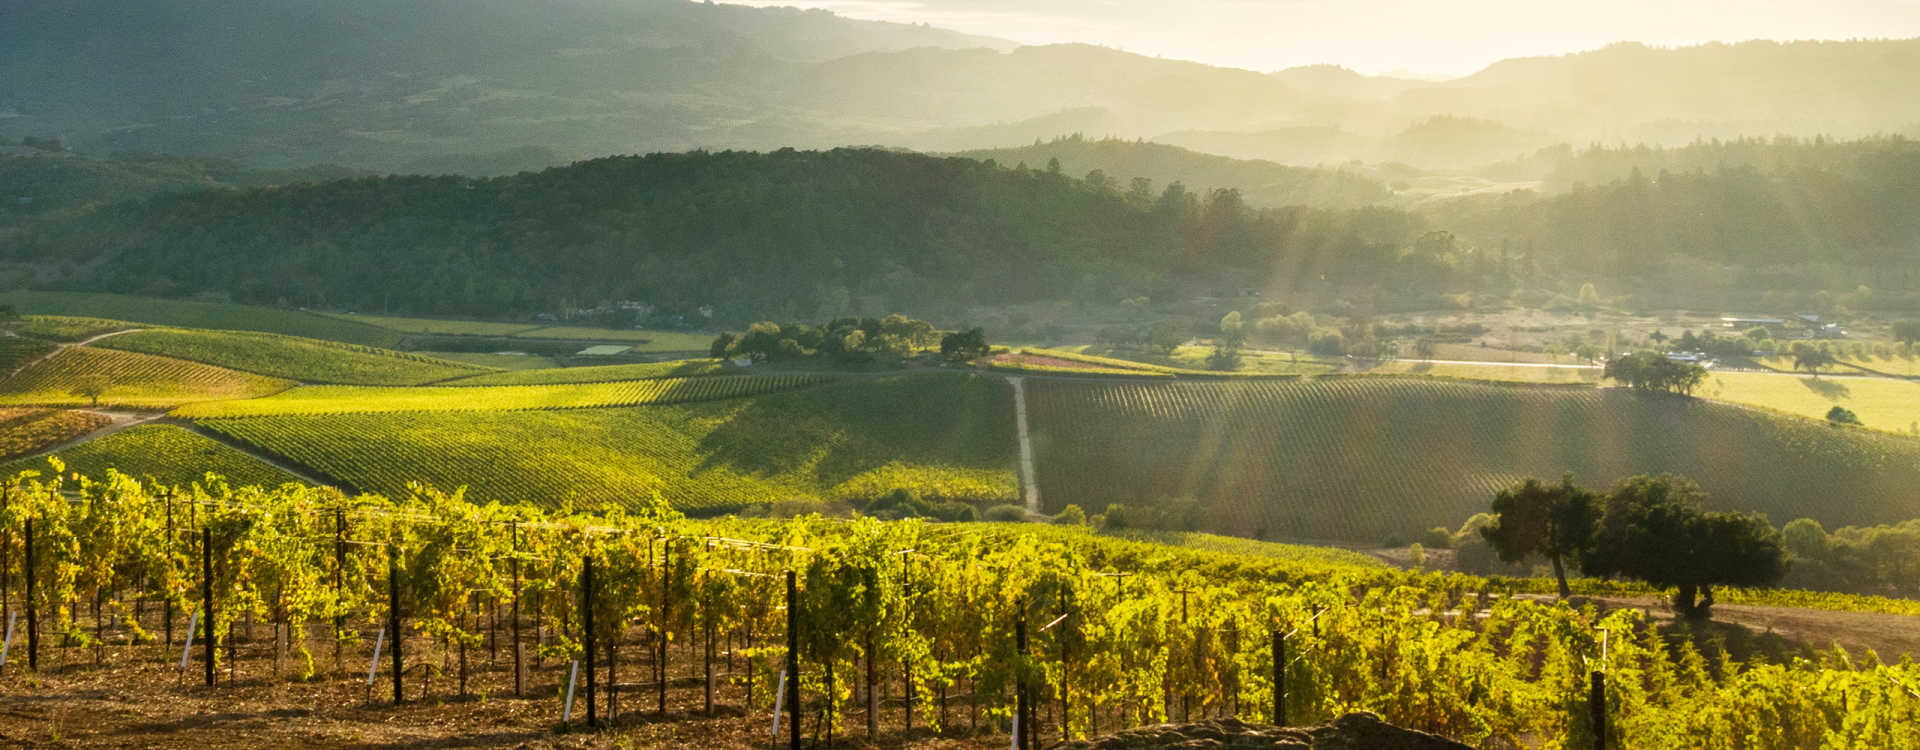 Image for Napa Valley content section